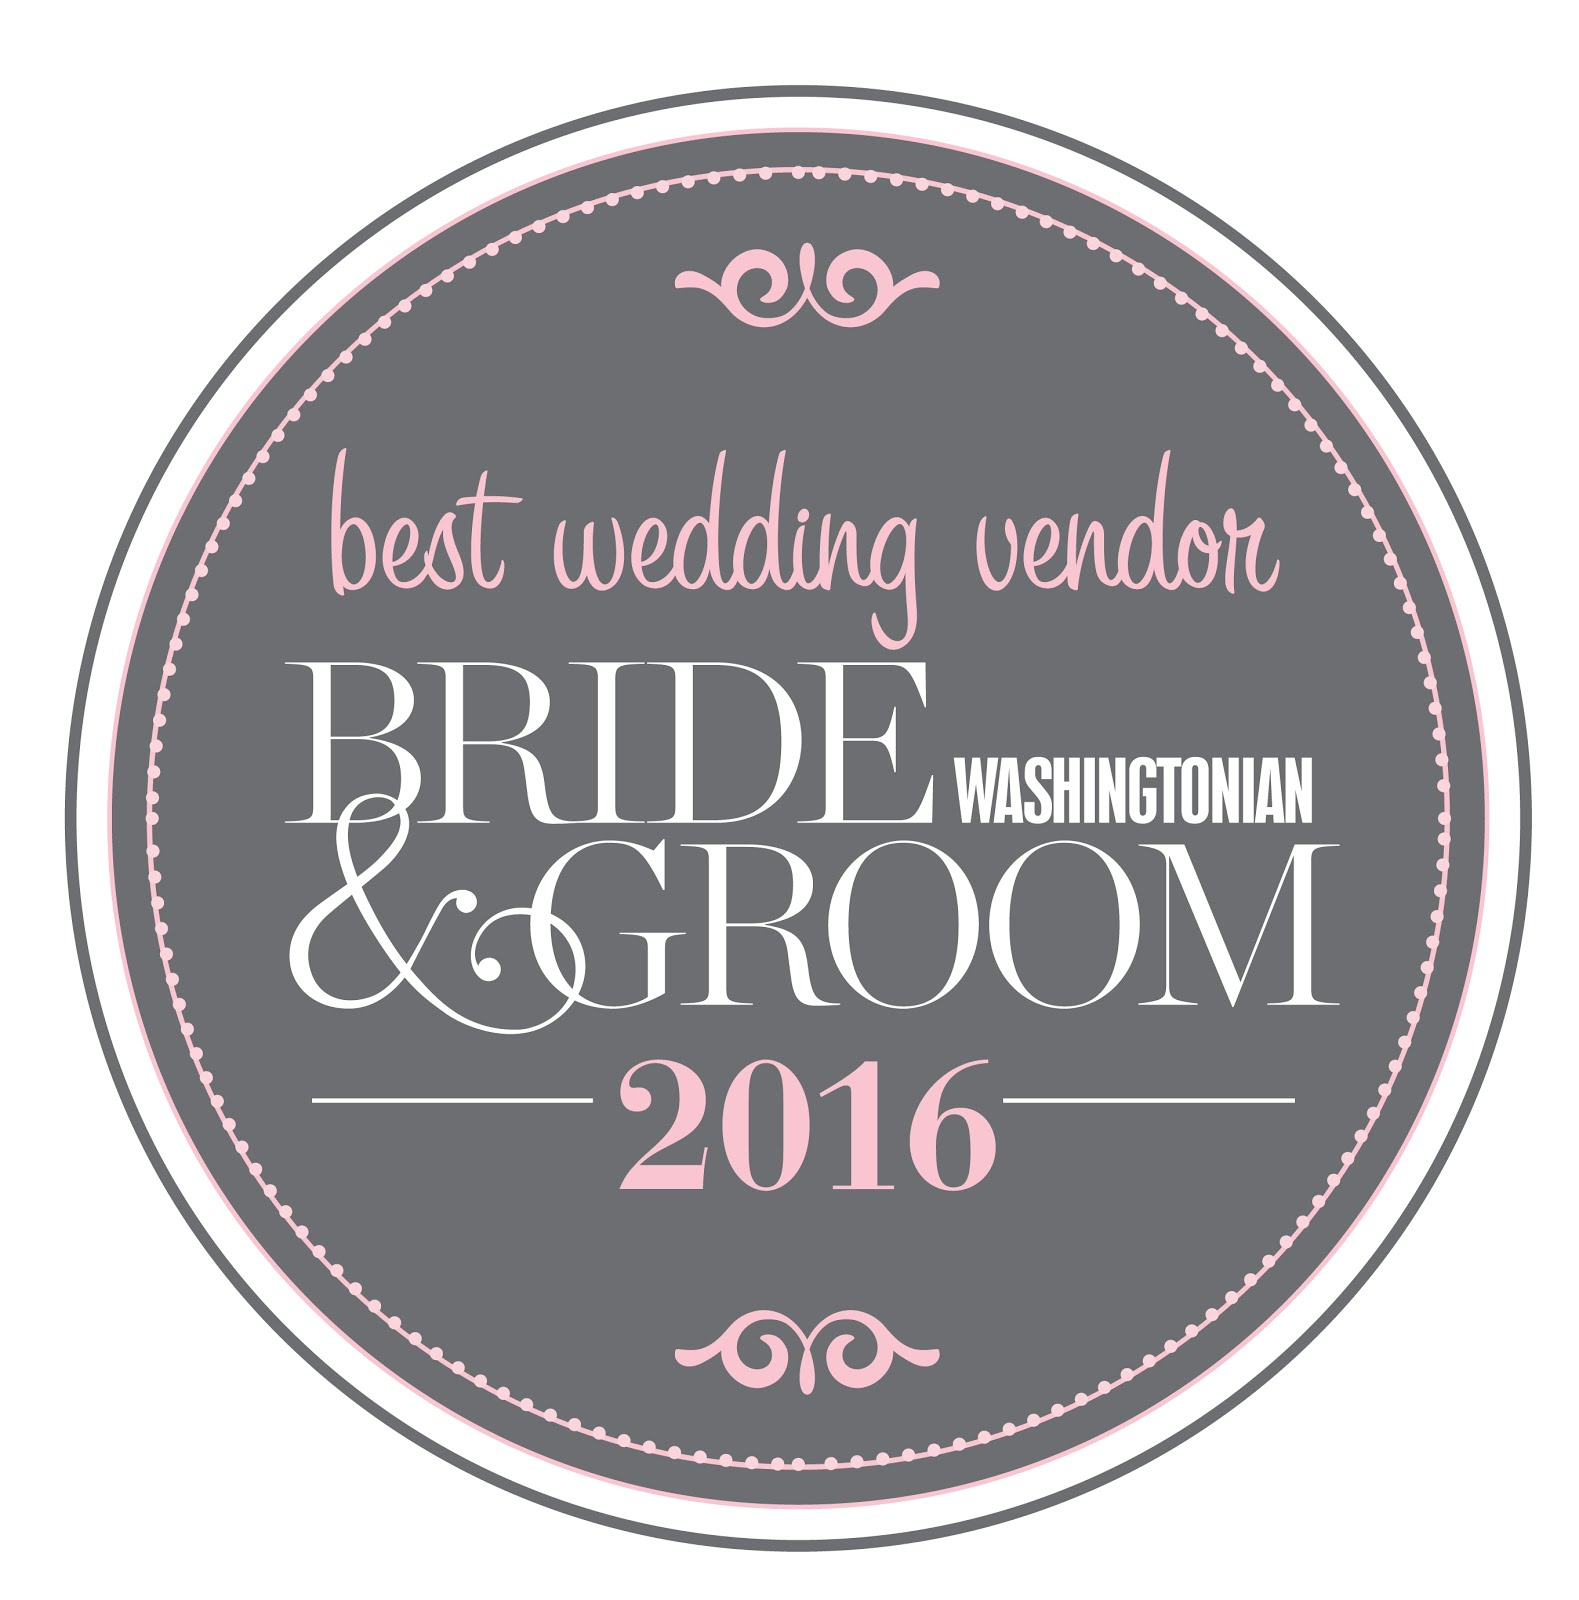 Bride & Groom Washingtonian 2016